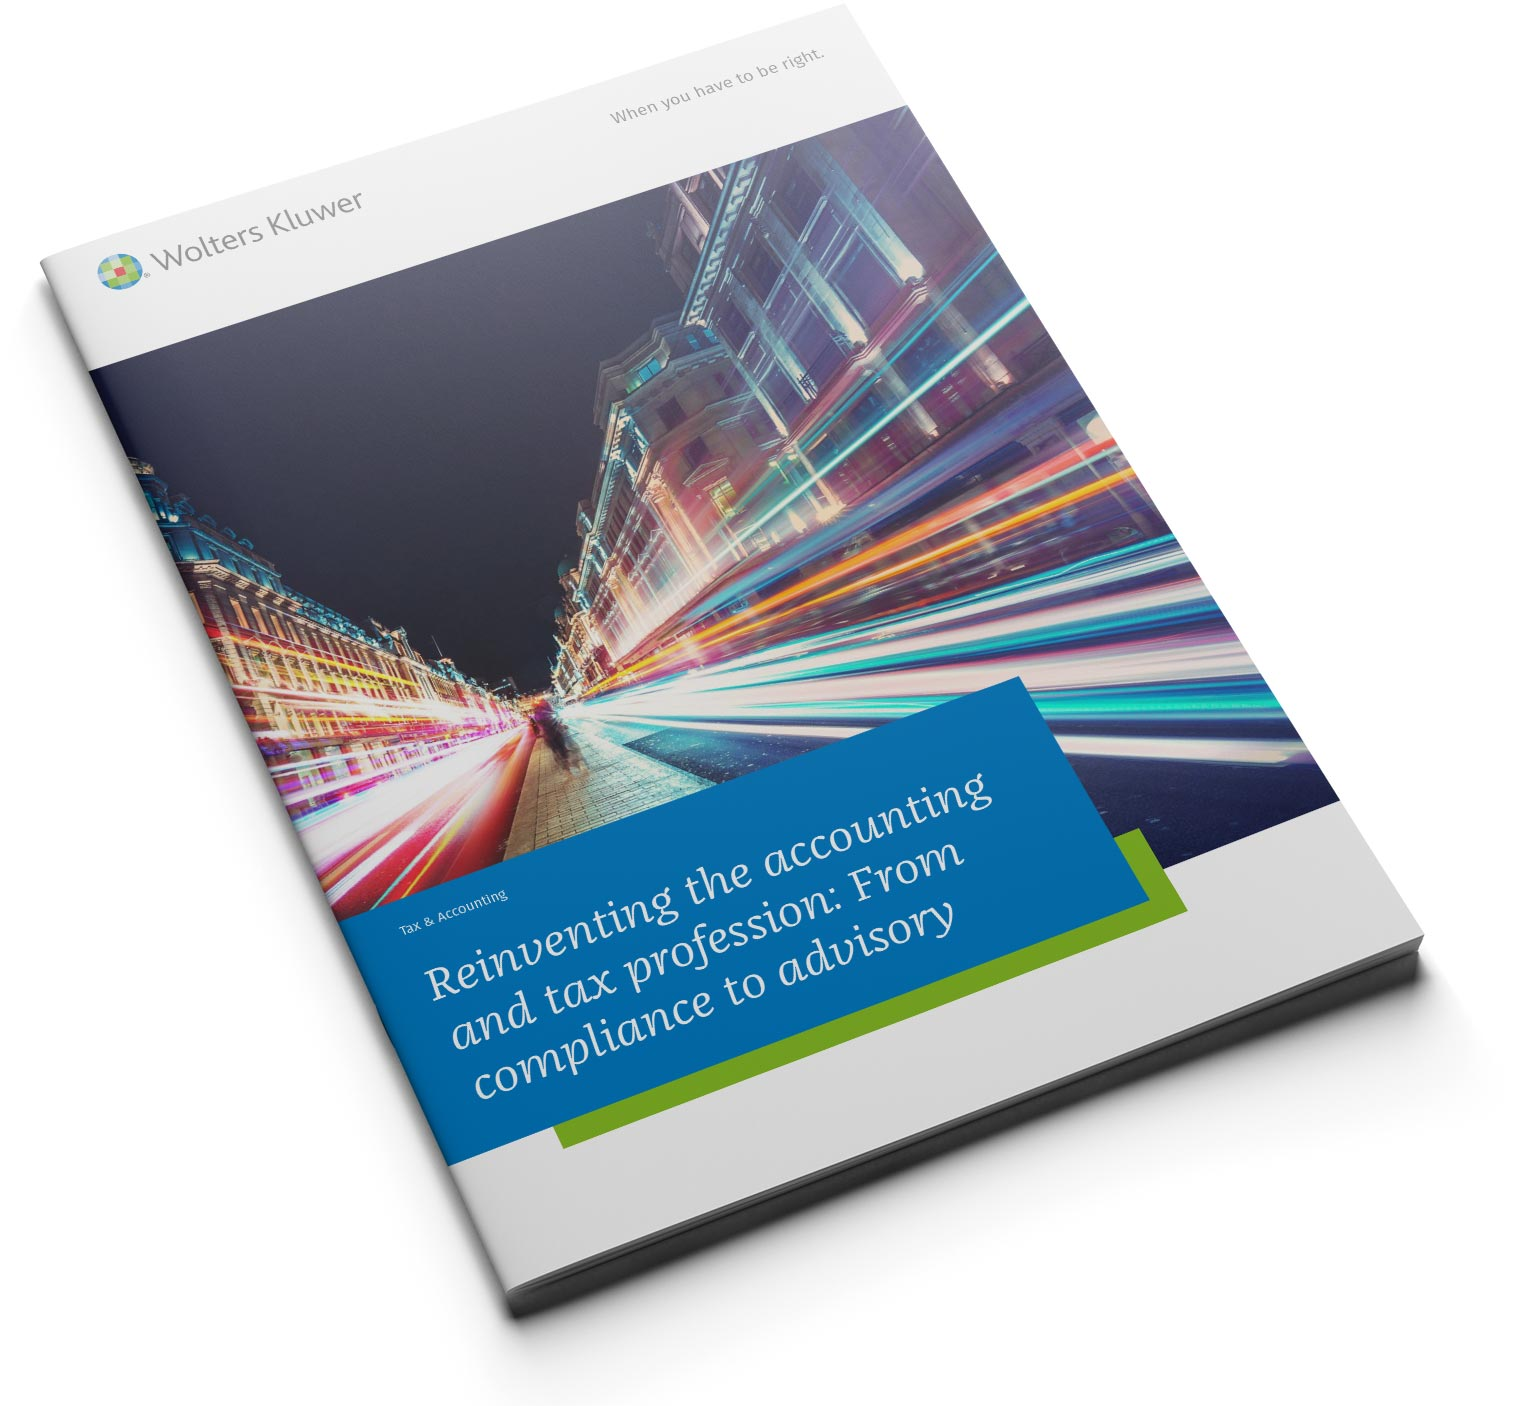 From compliance to advisory Whitepaper from Wolters Kluwer